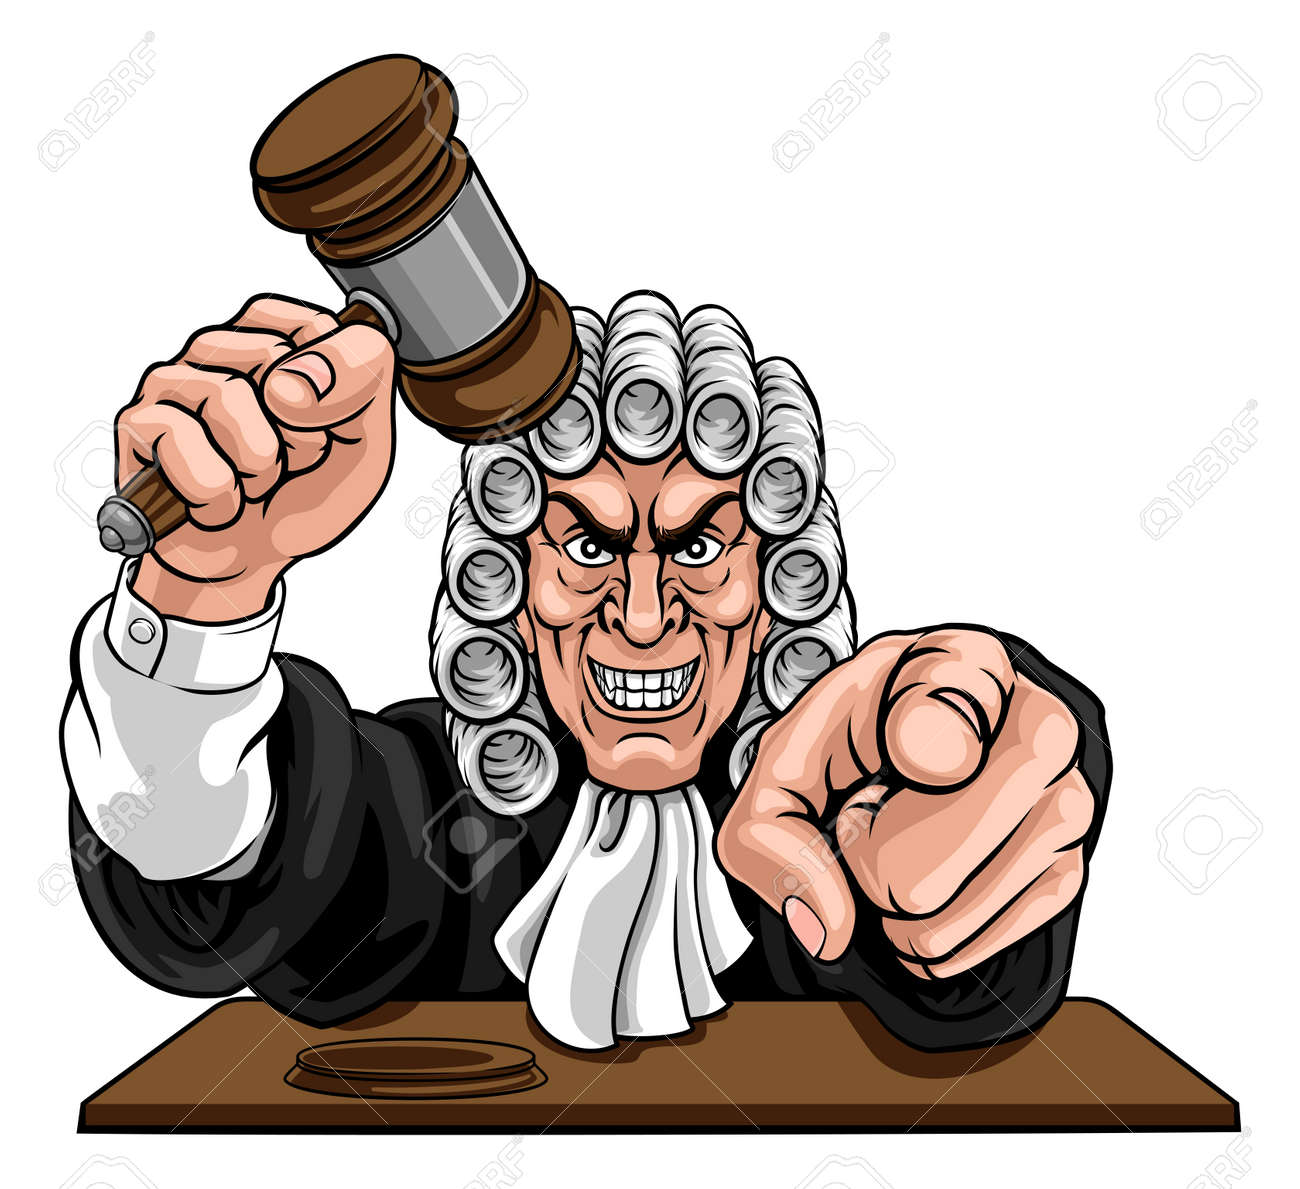 An angry or mean judge cartoon character pointing and holding his gavel hammer - 134903312